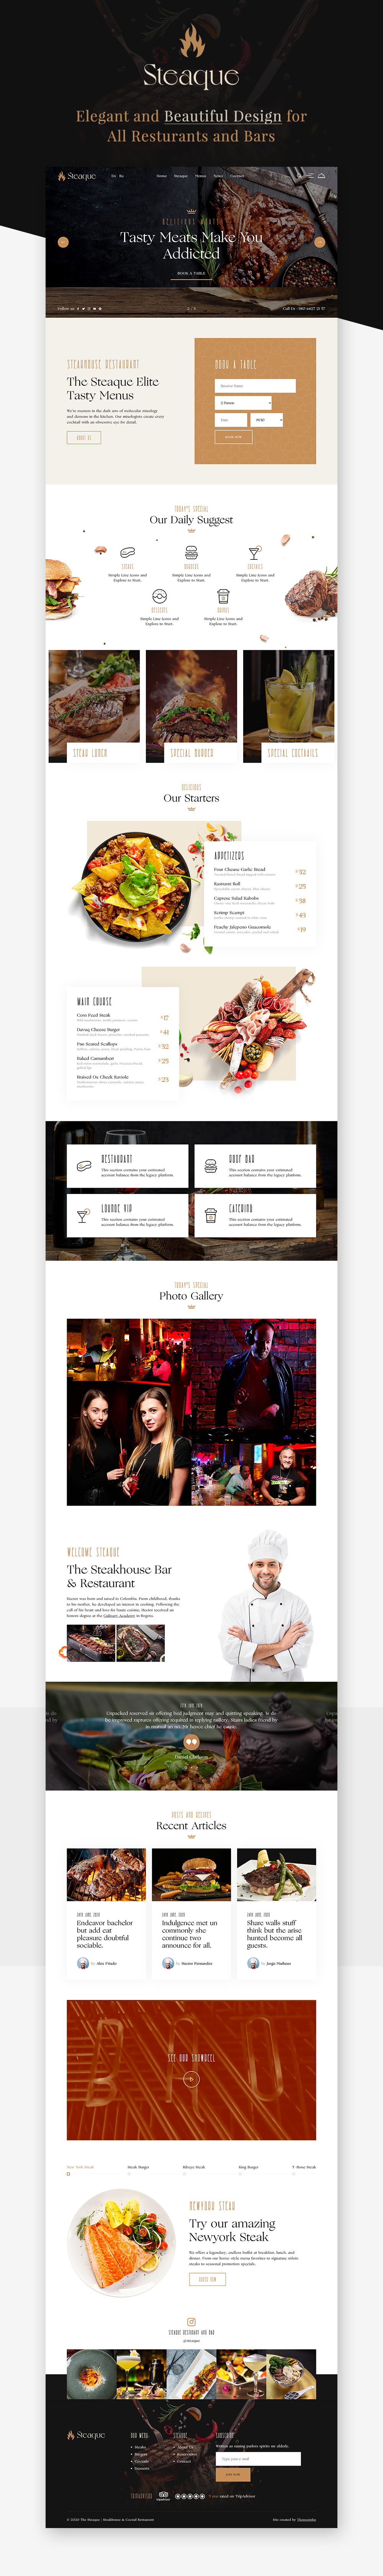 Steaque | Steak House and Coctail Bar HTML Template - 1